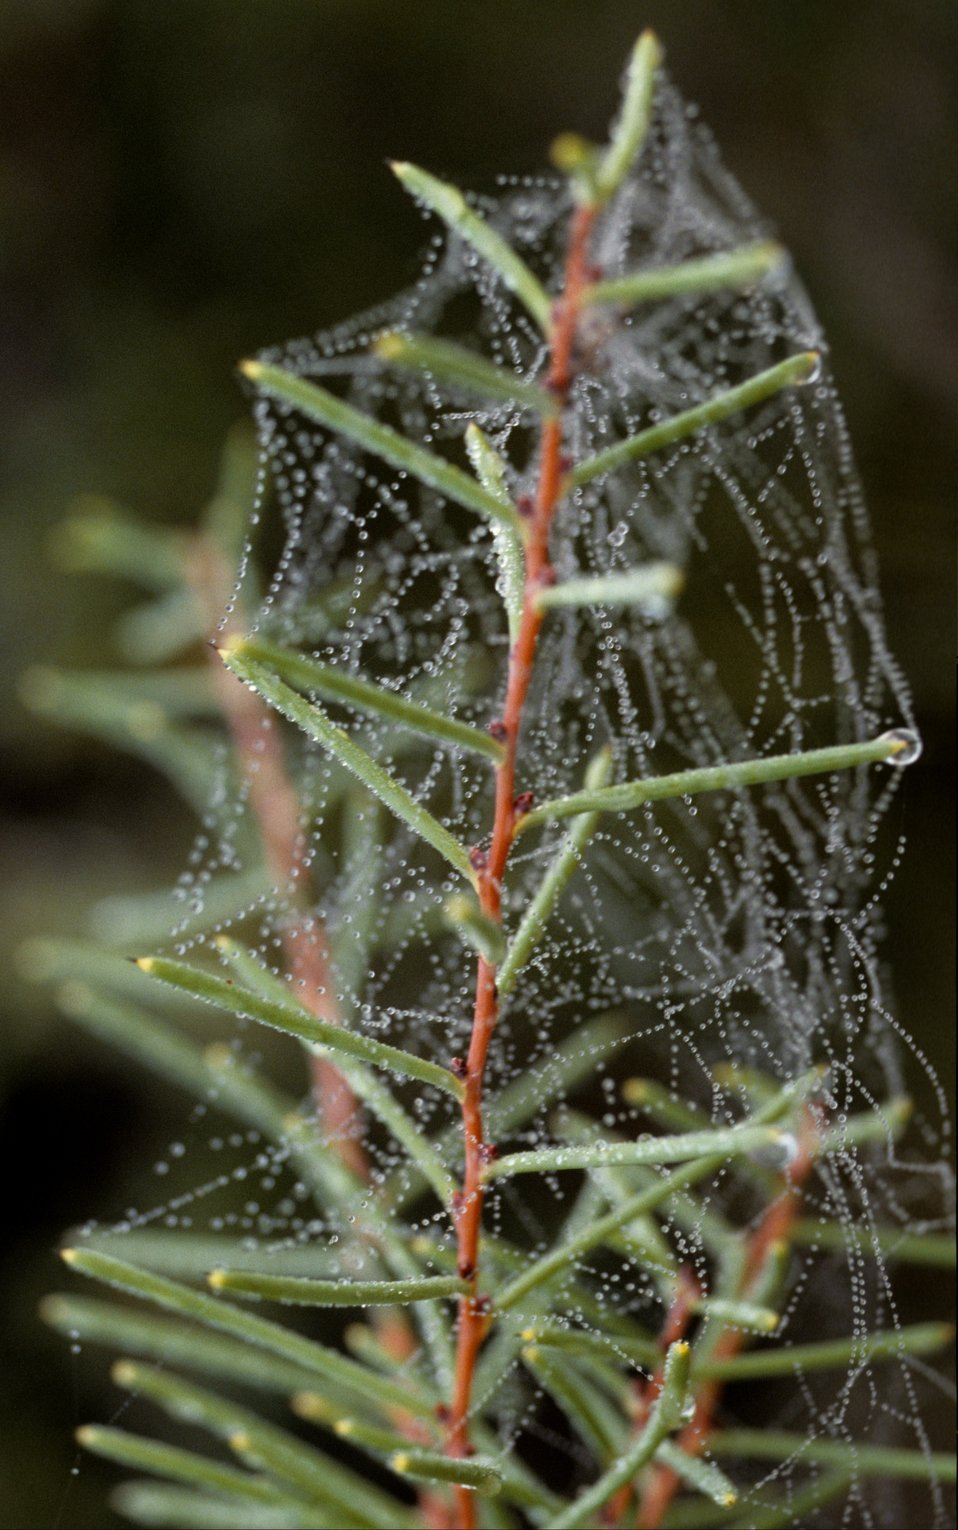 A dew-covered spider web.